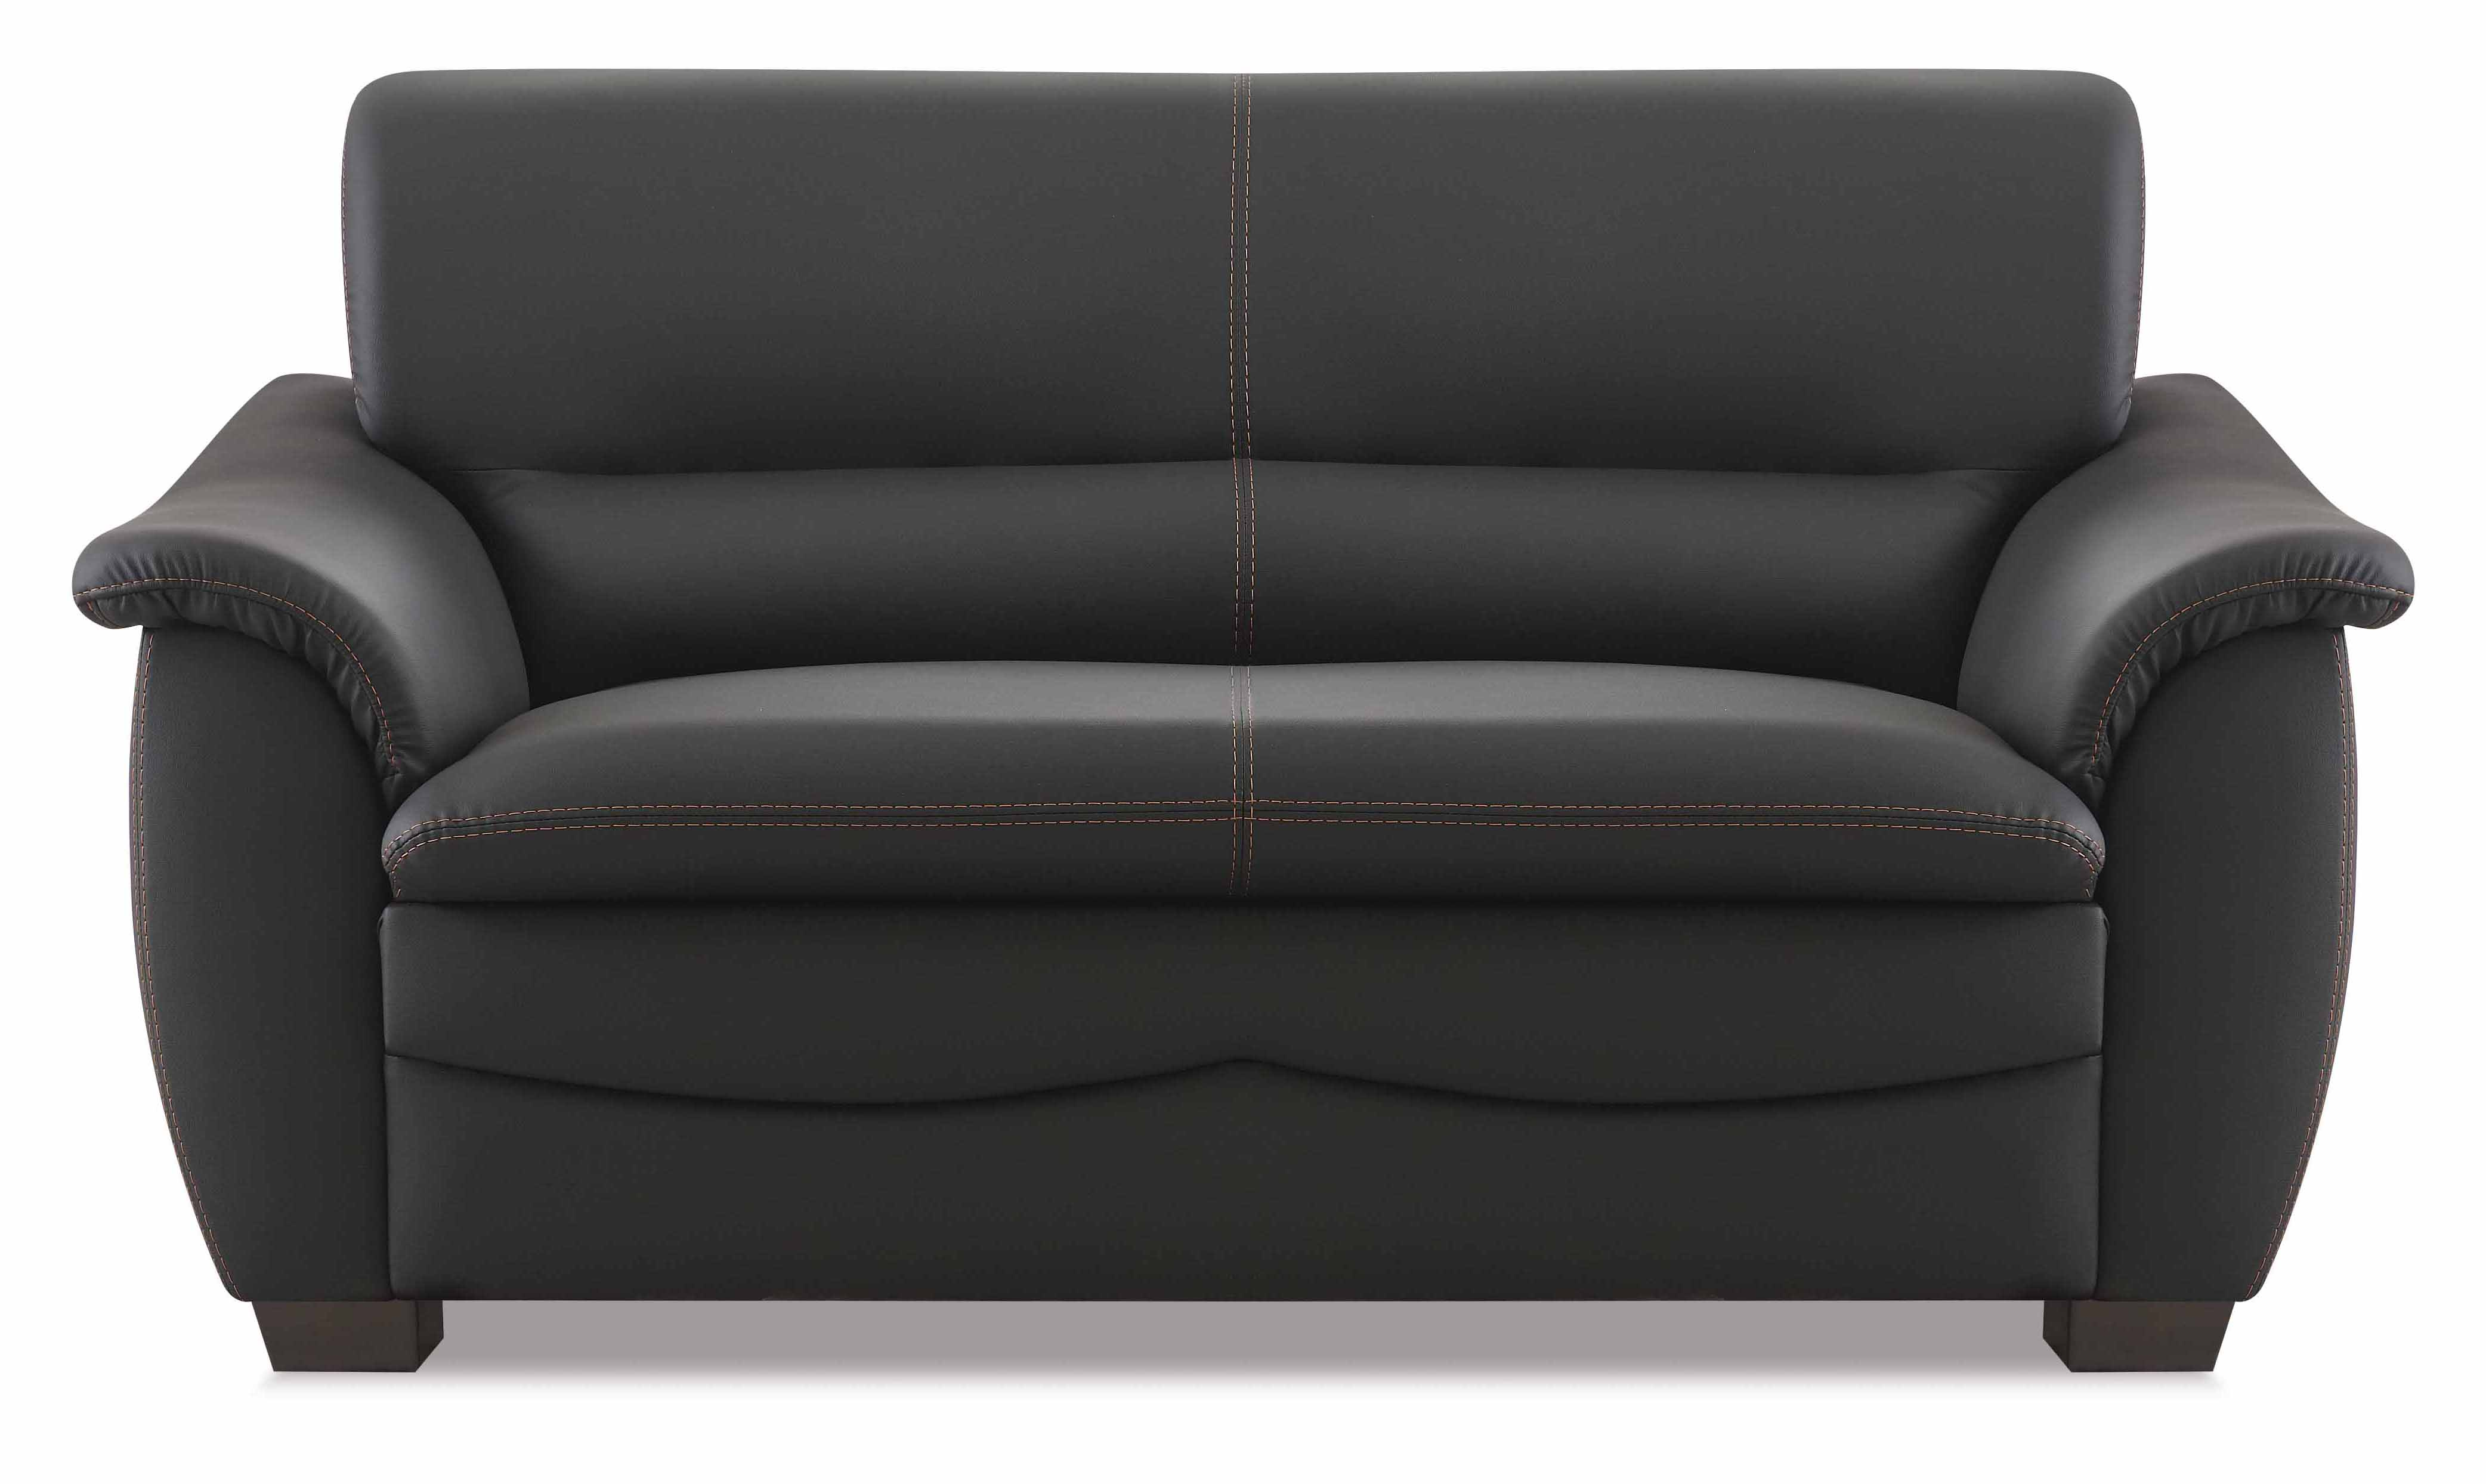 hukla sofa 2 sitzer schwarz g nstig kaufen m bel star. Black Bedroom Furniture Sets. Home Design Ideas